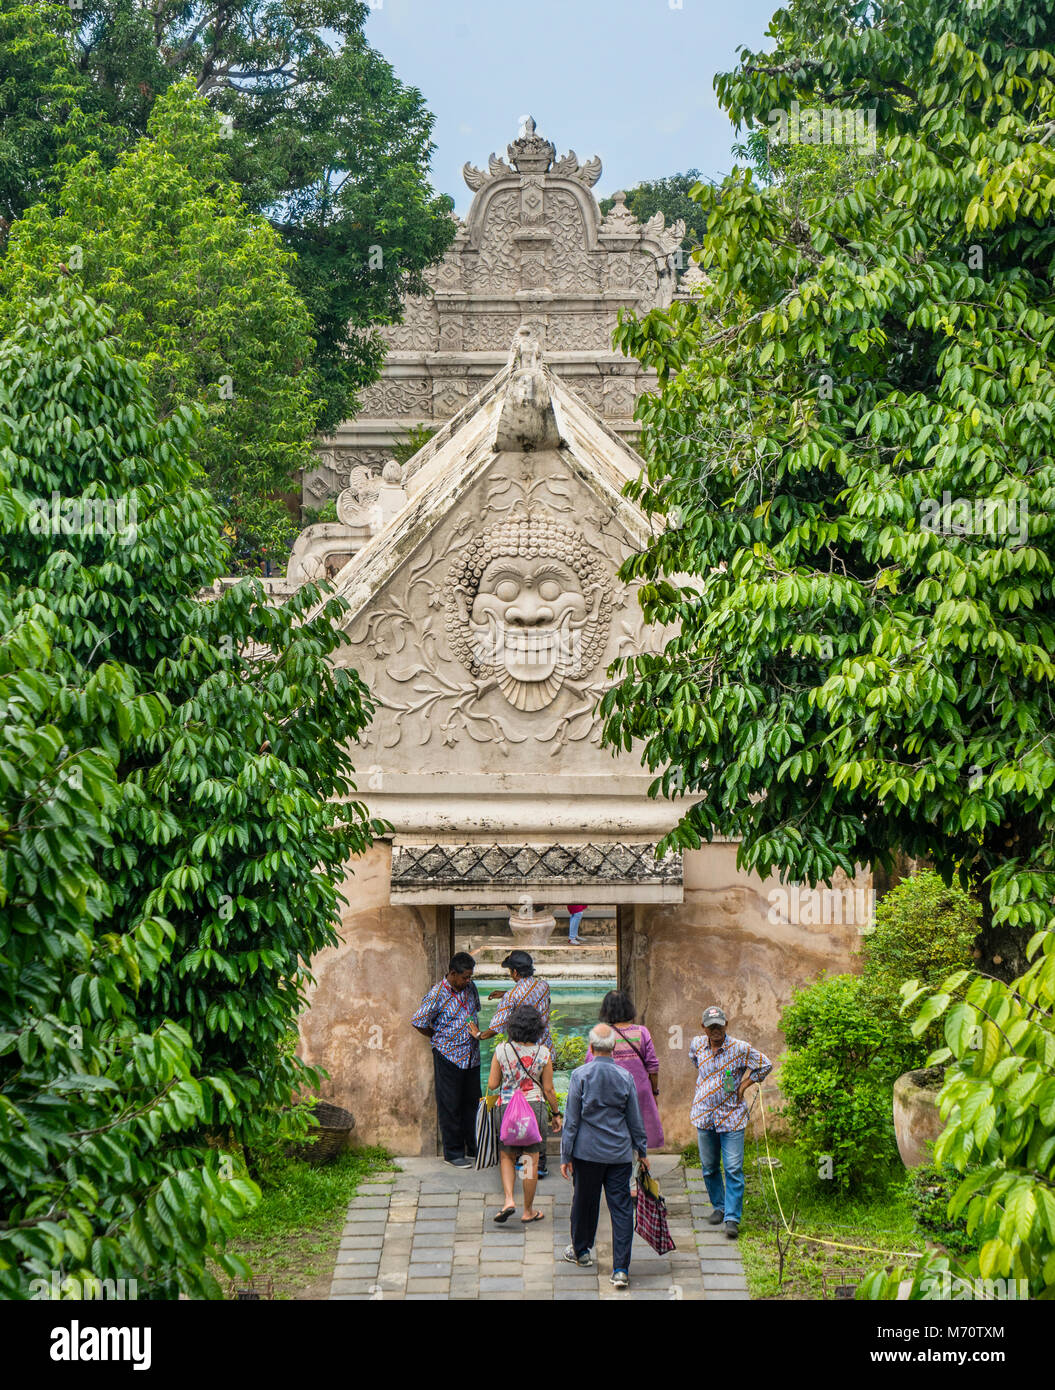 entrance gate to the Taman Sari Water Castle, the site of a former royal garden of the Sultanate of Yogyakarta, - Stock Image